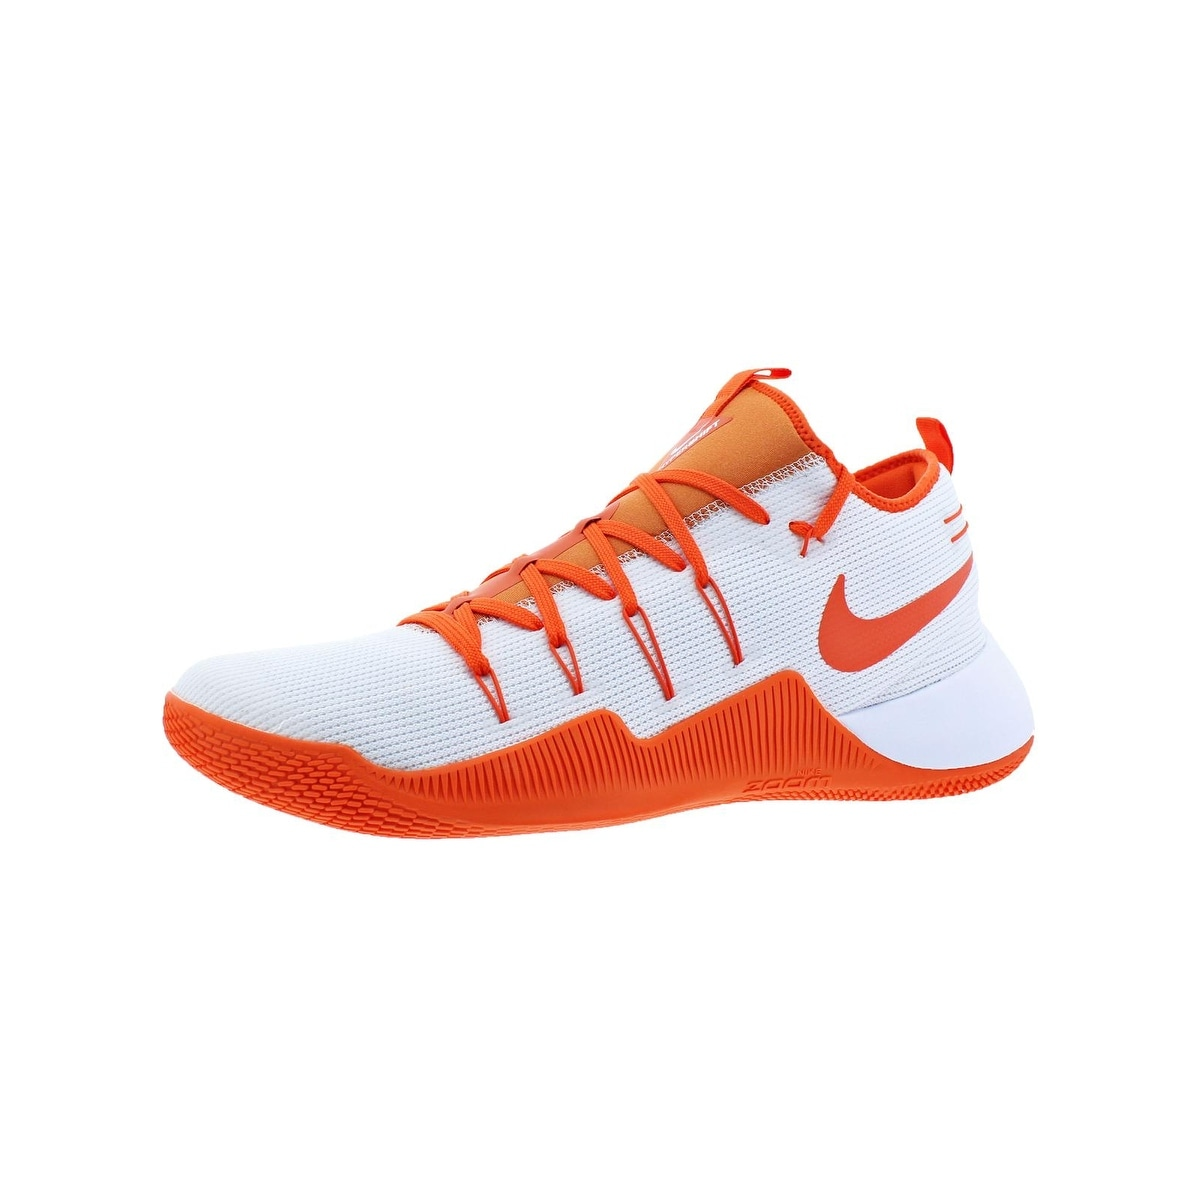 975ce3beac55a Buy Green Nike Men s Athletic Shoes Online at Overstock